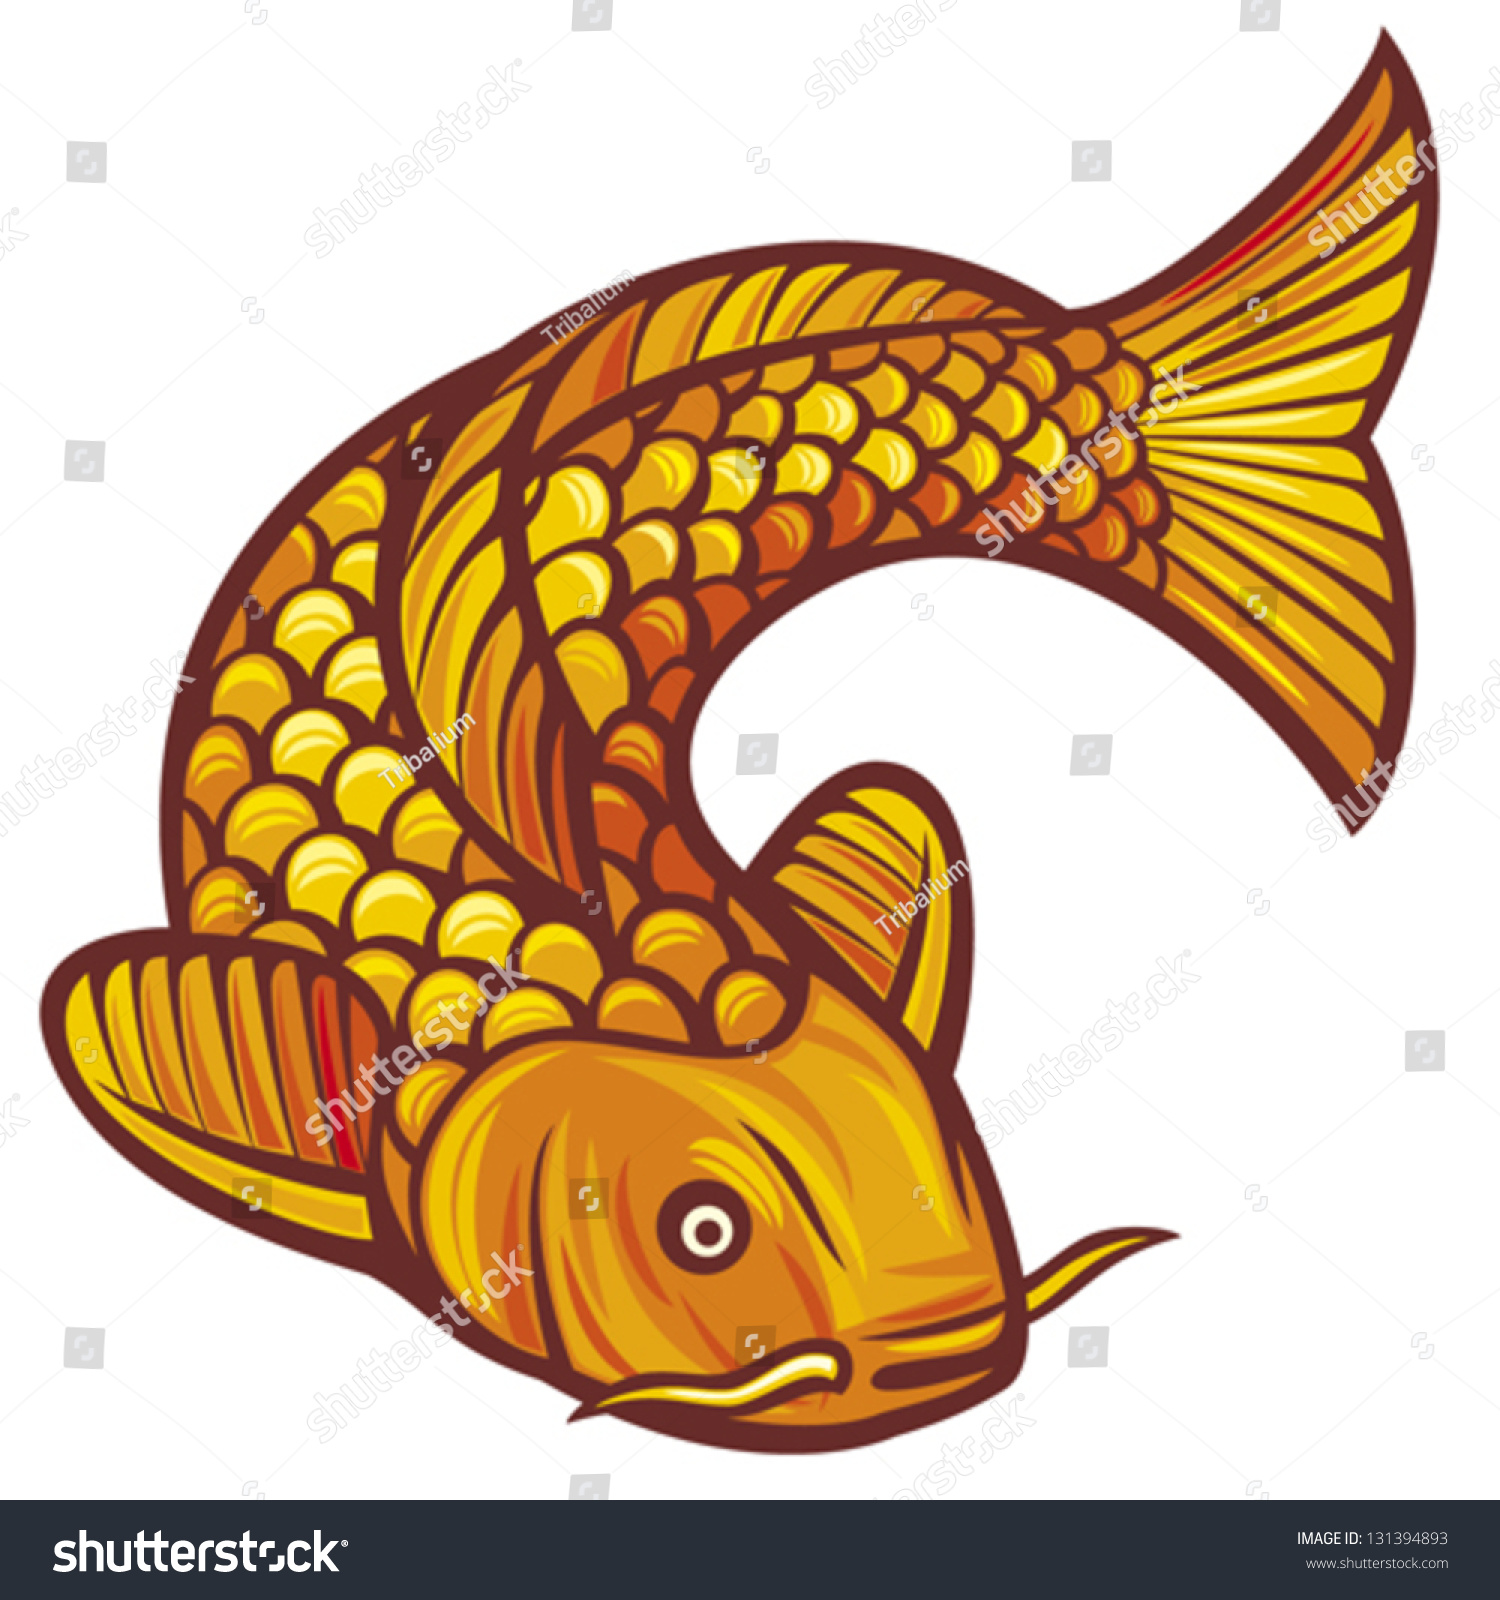 Vector Illustration Japanese Chinese Inspired Koi Stock Vector ...